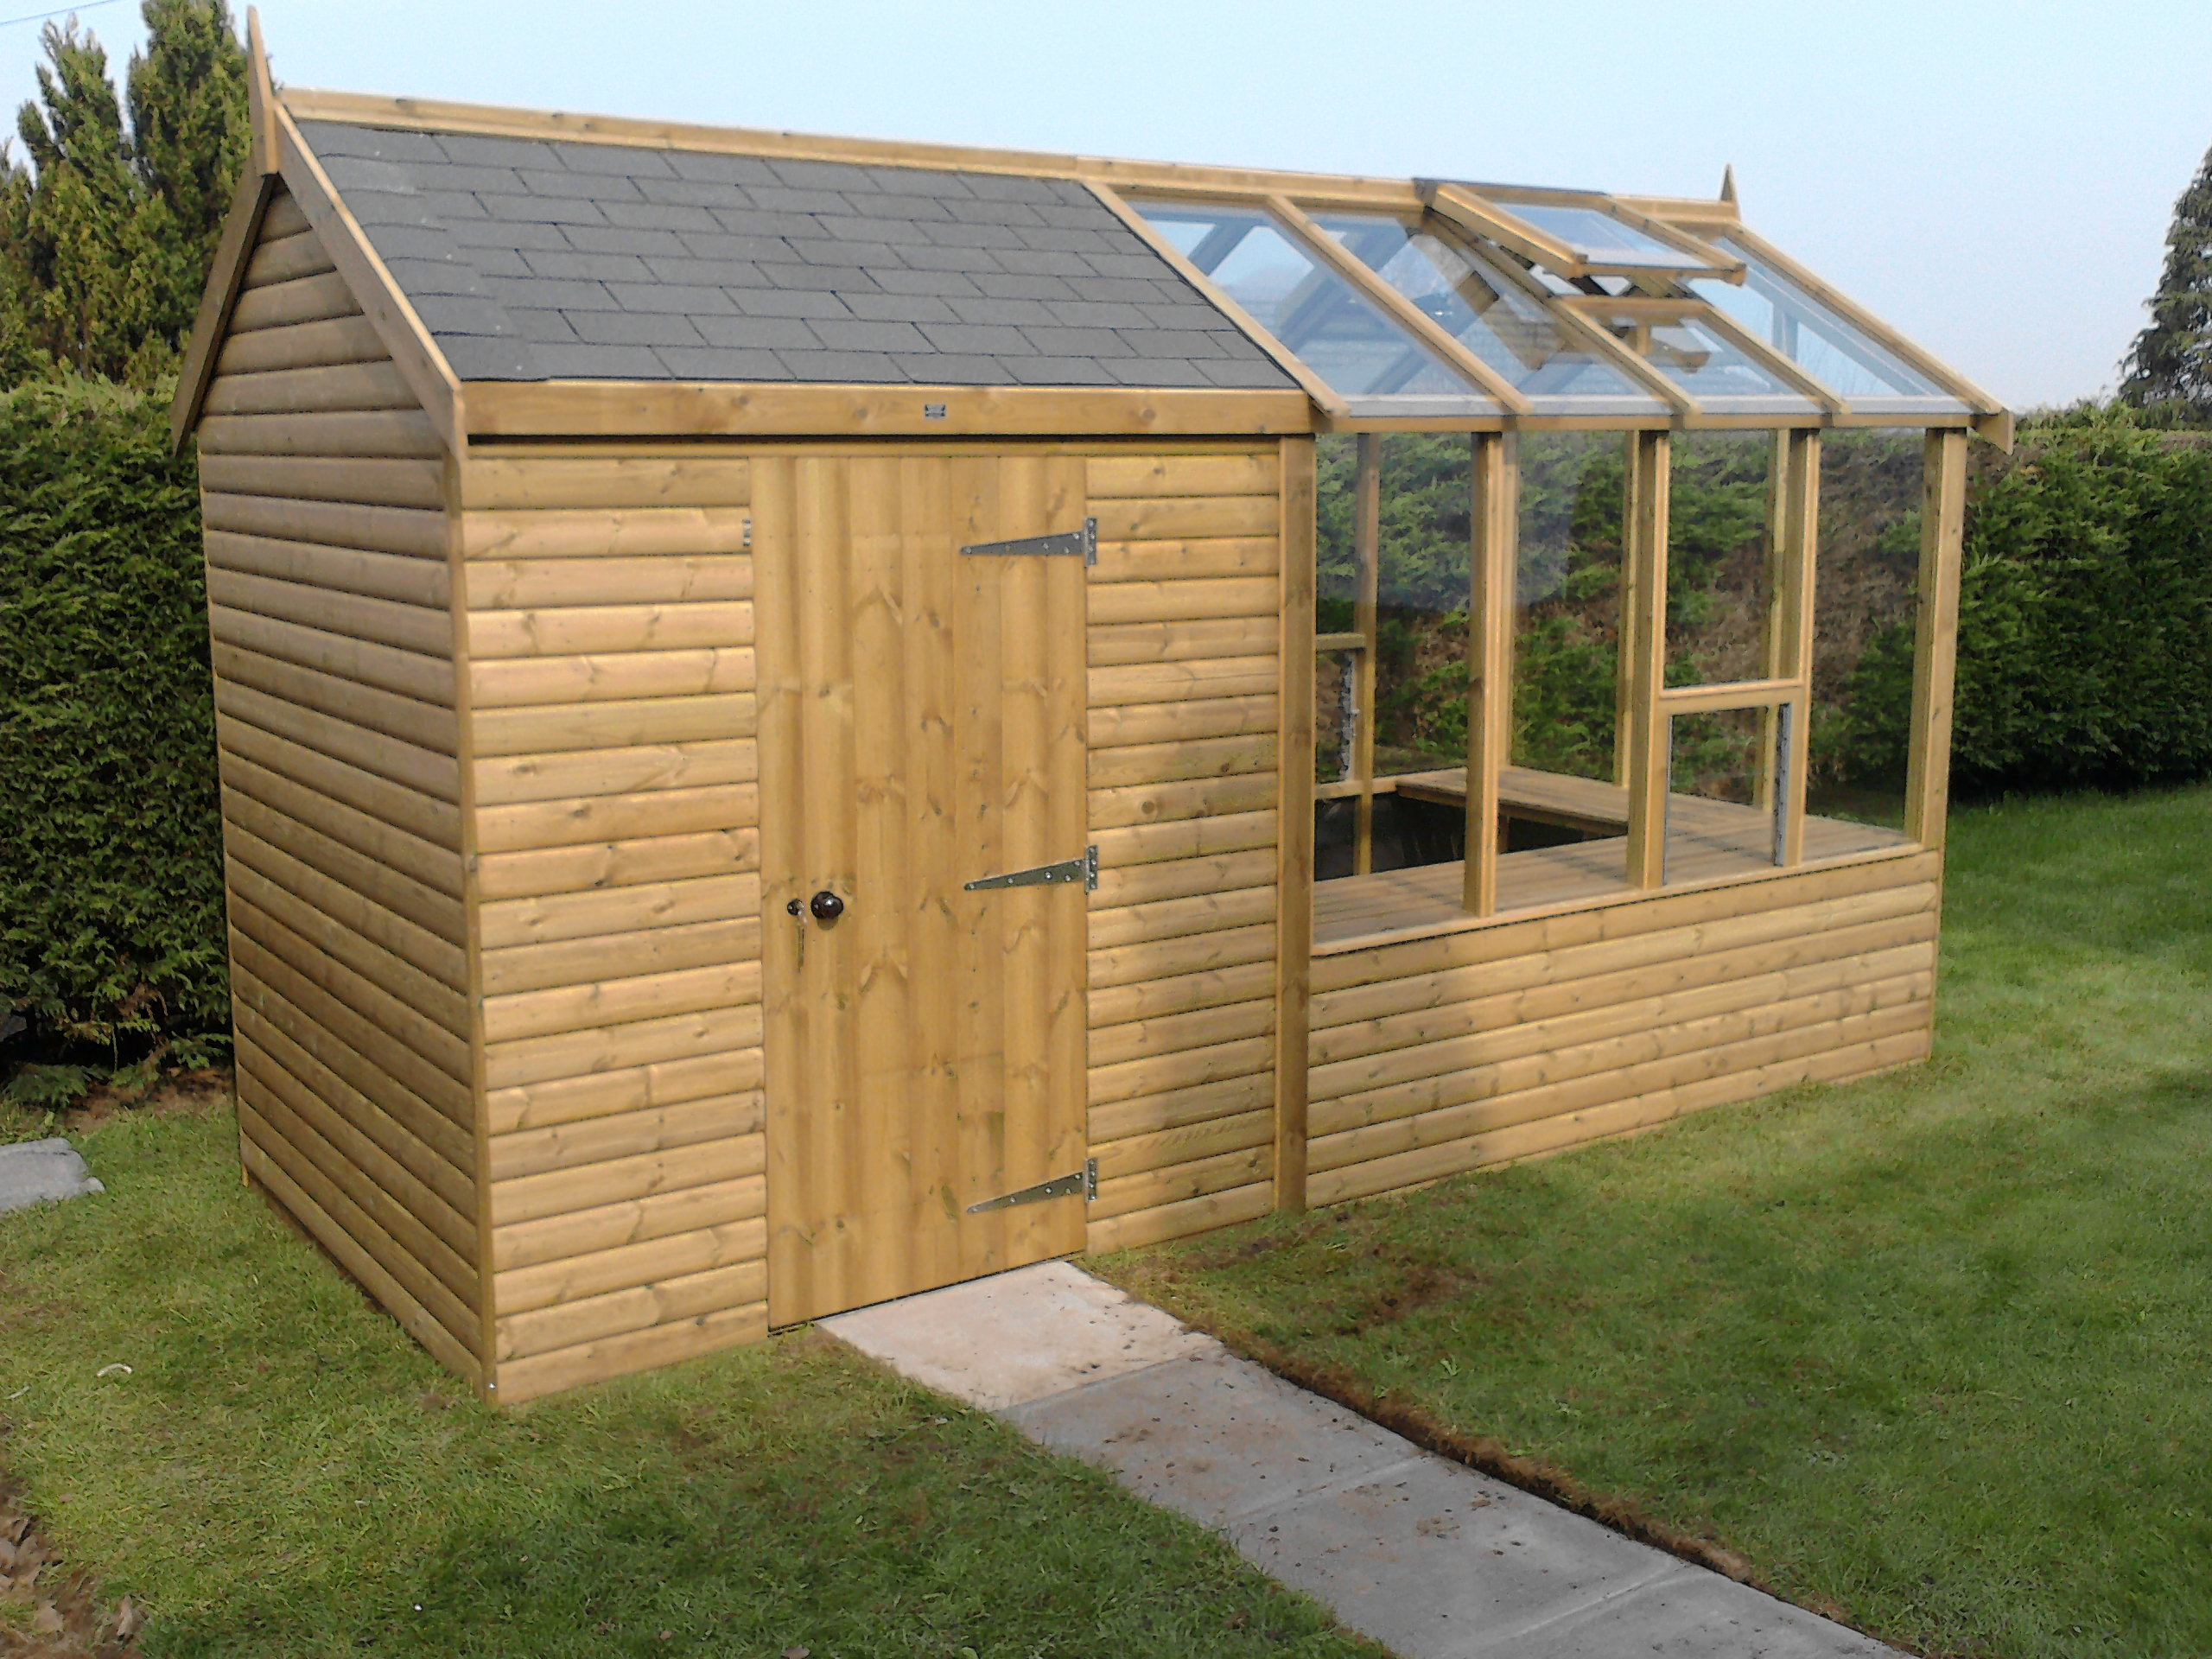 Damis potting shed plans free uk for Garden shed plans